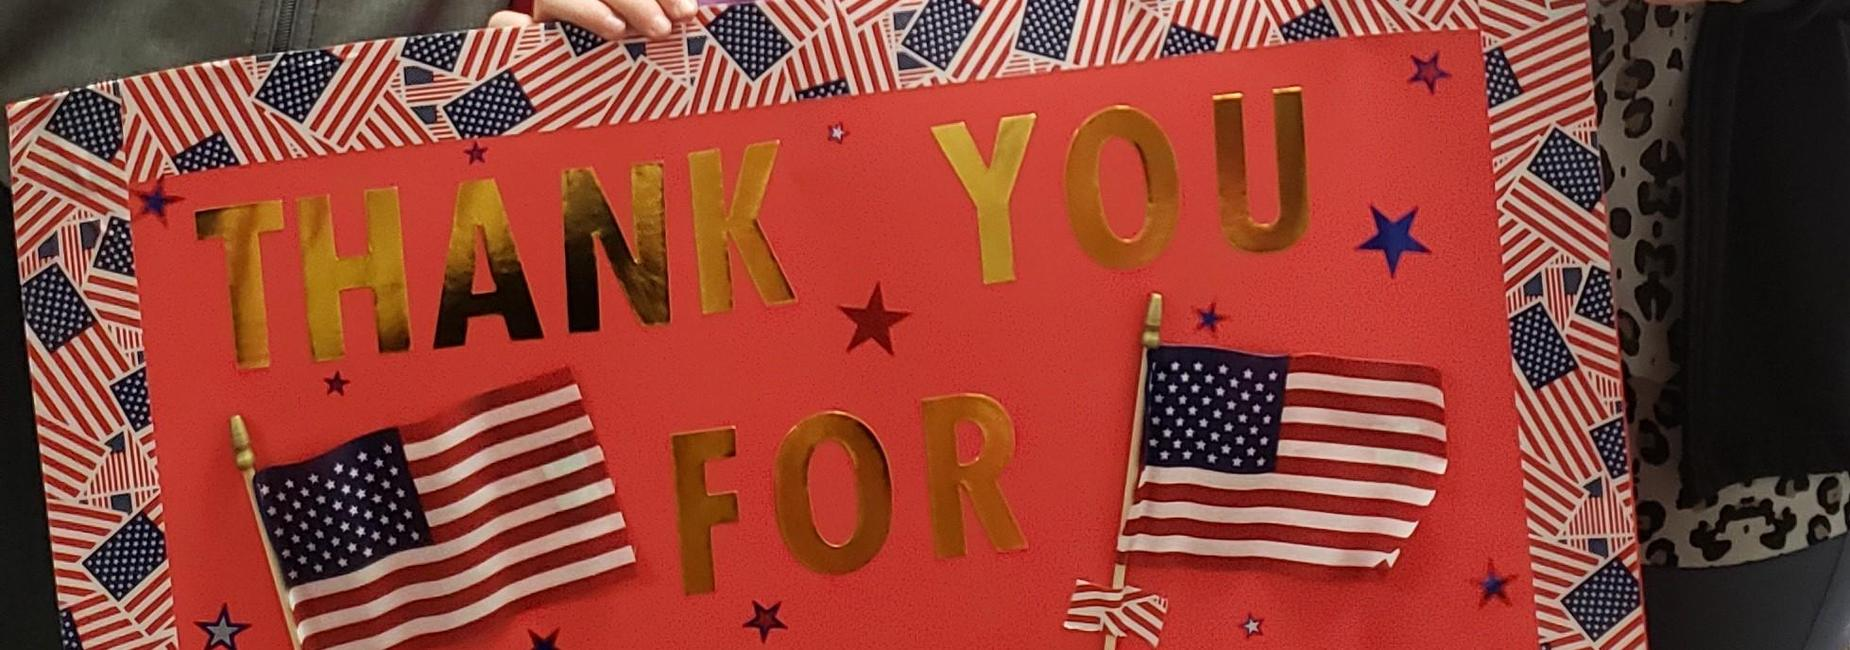 Poster with American flag border that reads Thank You for your service